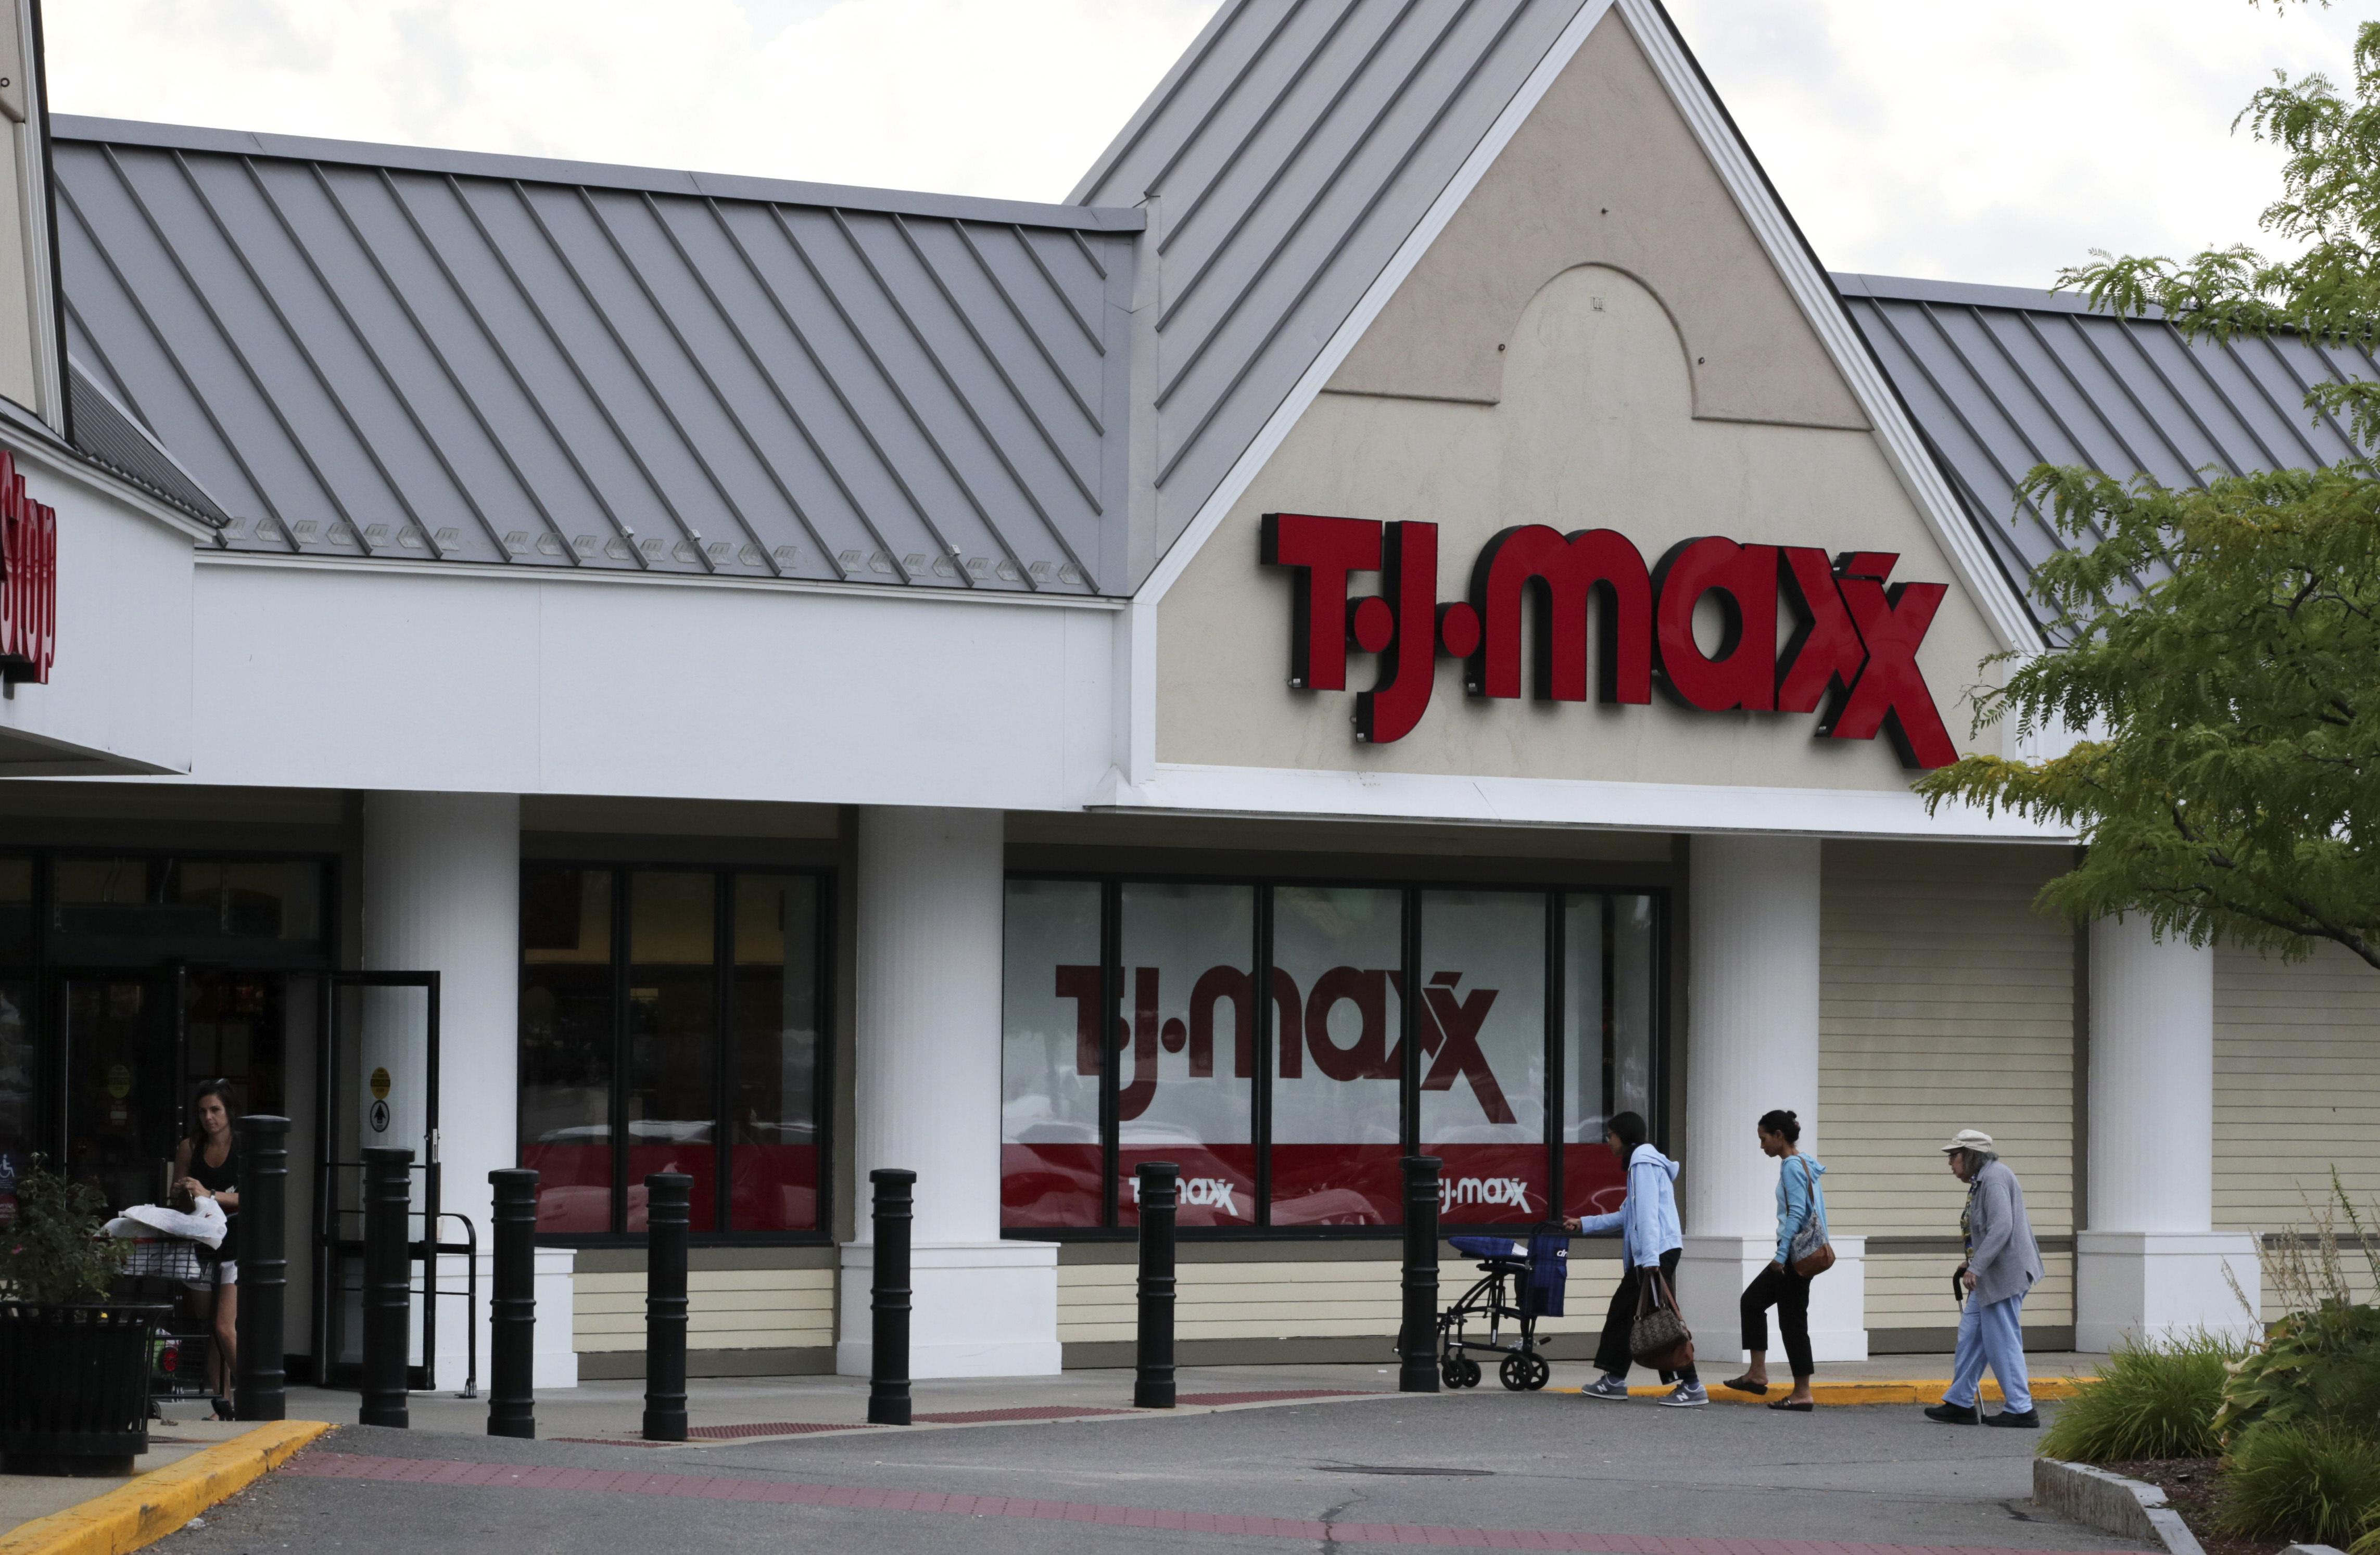 Tj Maxx Kohl S And Jcpenney Closing All Stores For 2 Weeks Amid Covid 19 Pandemic Pix11